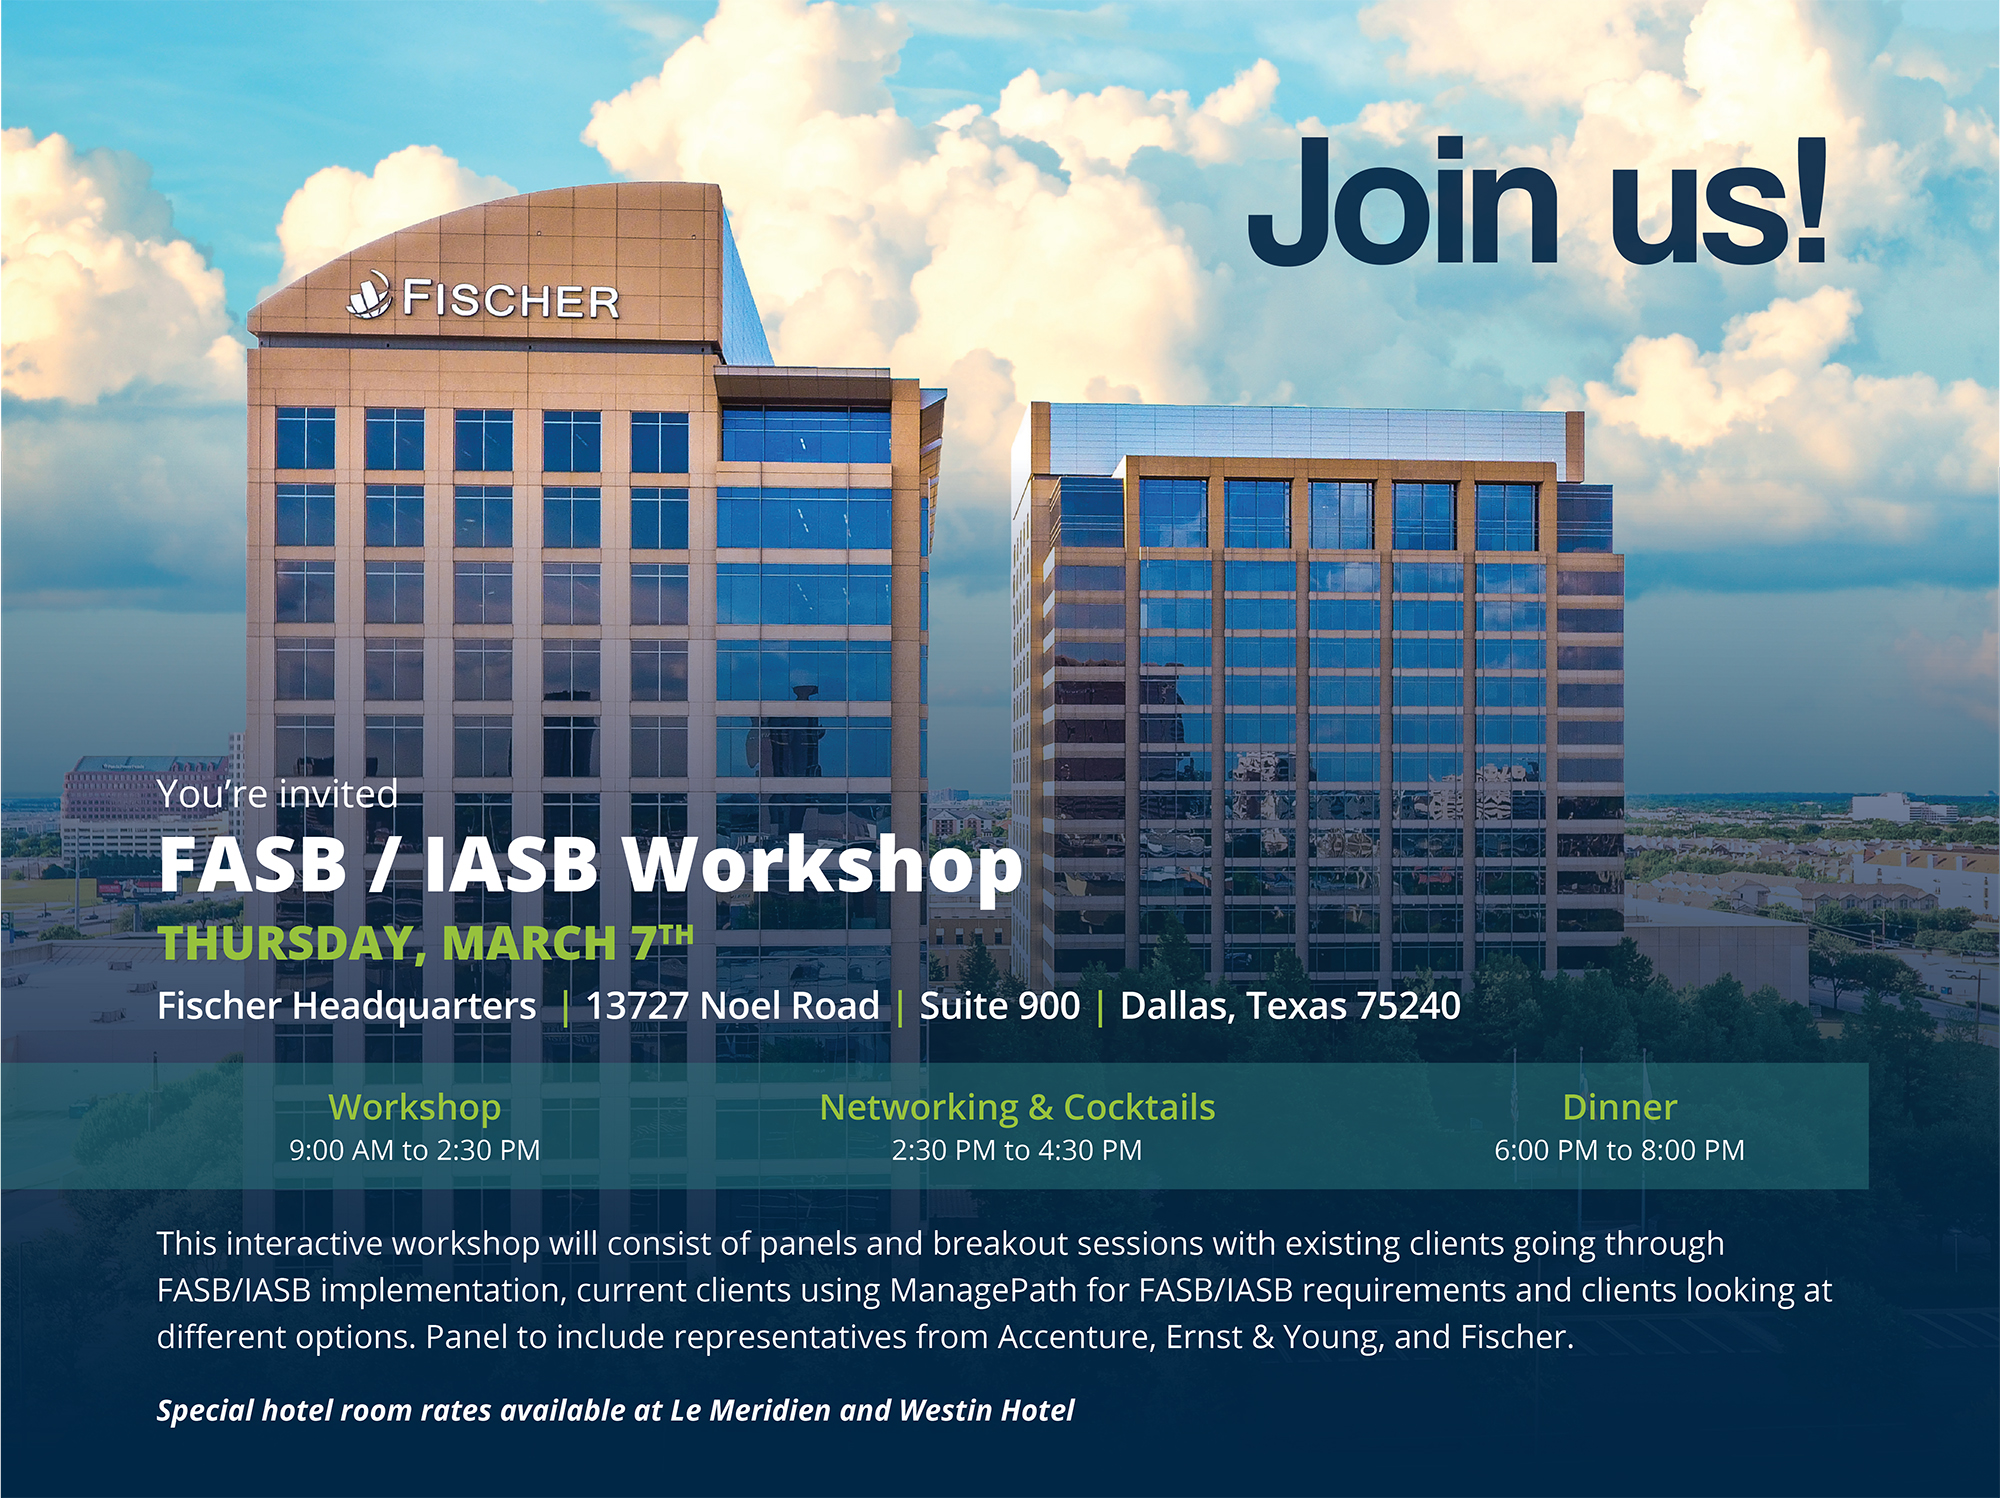 FASB Workshop Invite v11-01 copy.jpg